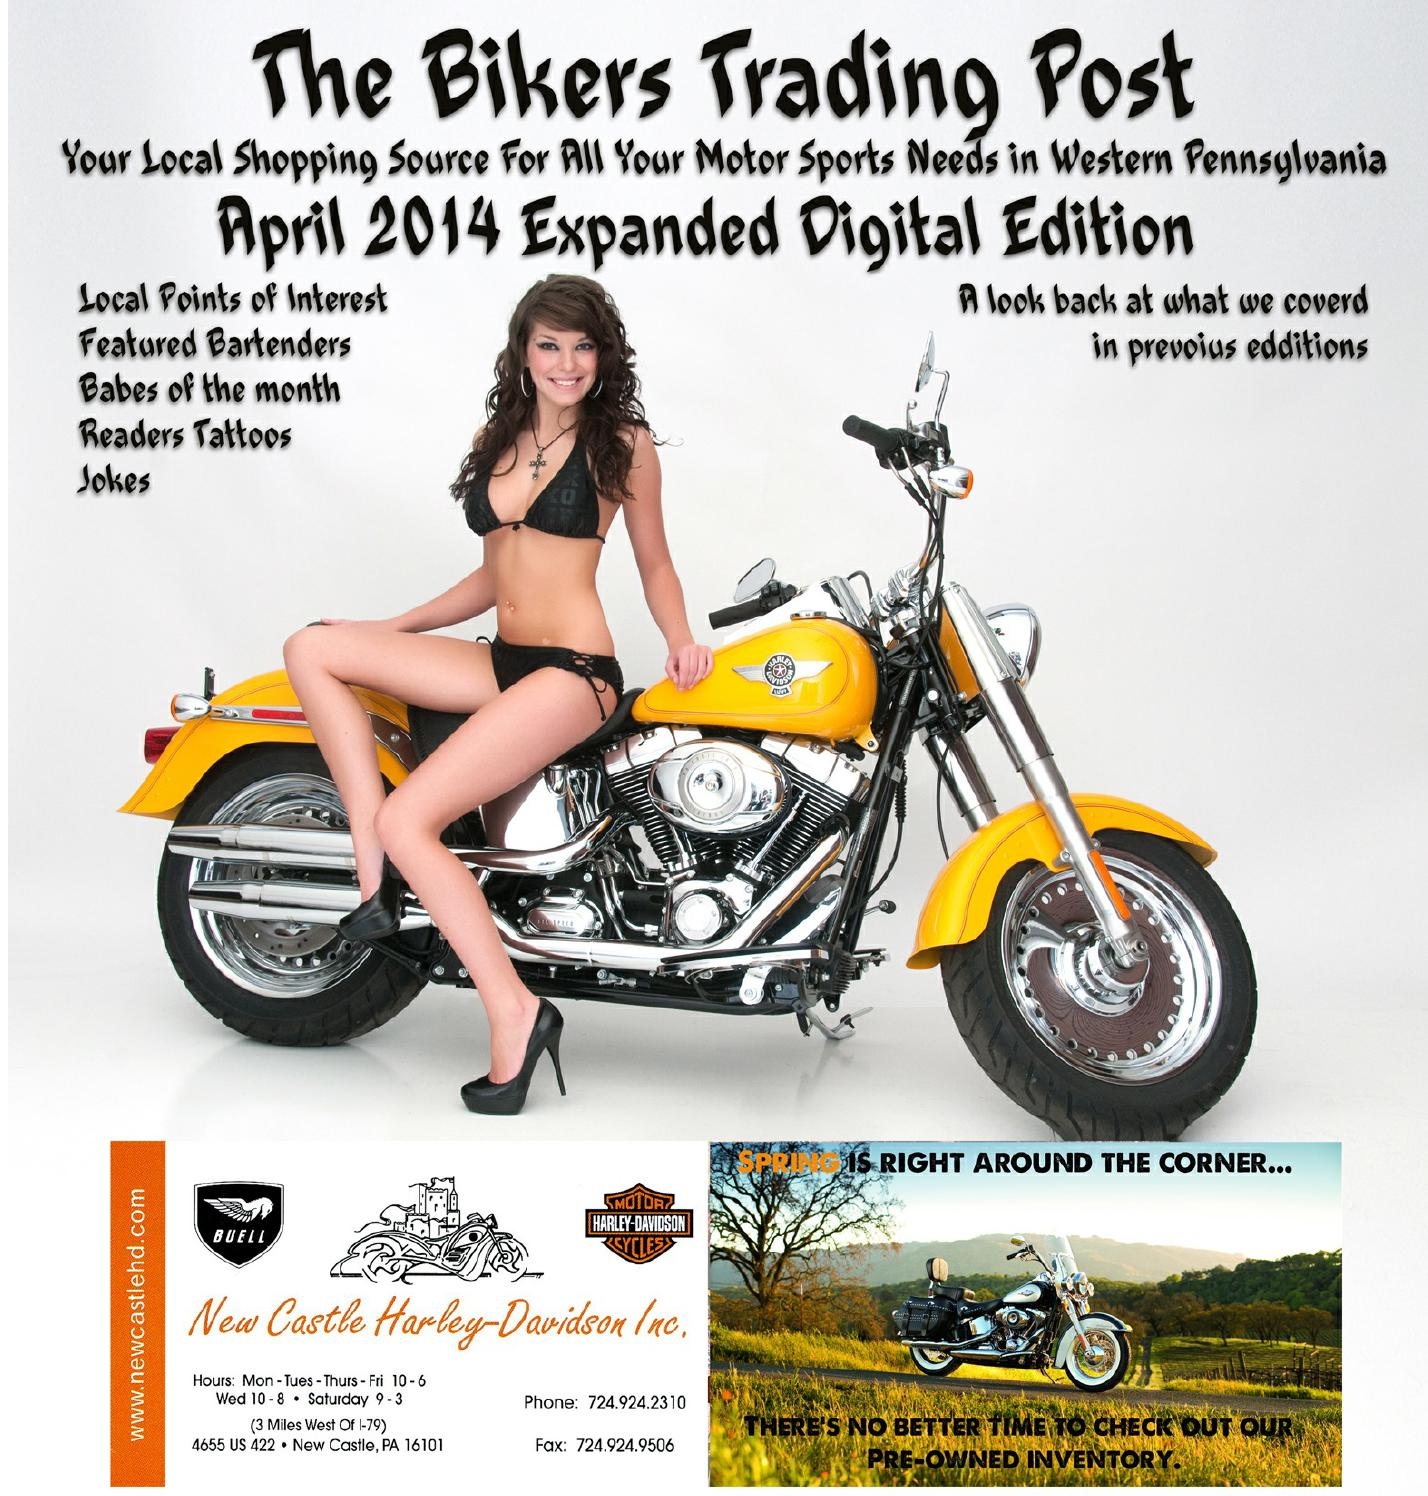 The bikers trading post digital past by The Bikers Trading